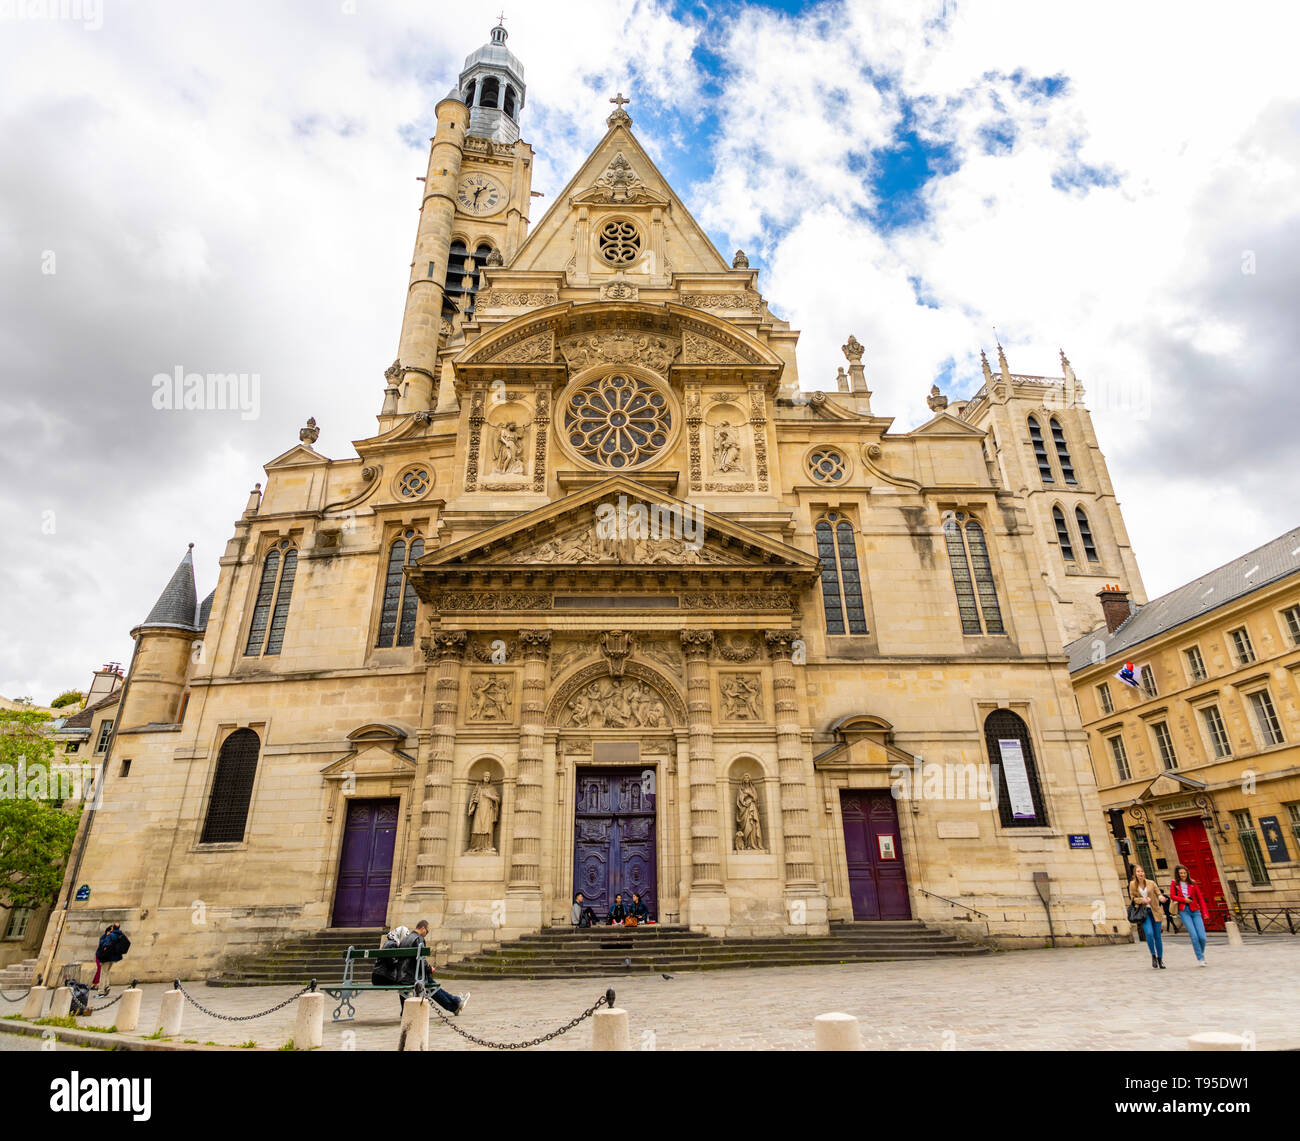 Paris, France - 24.04.2019: Saint Etienne du Mont Church in Latin Quarter, french gothic church in cloudy day, Paris, France - Stock Image